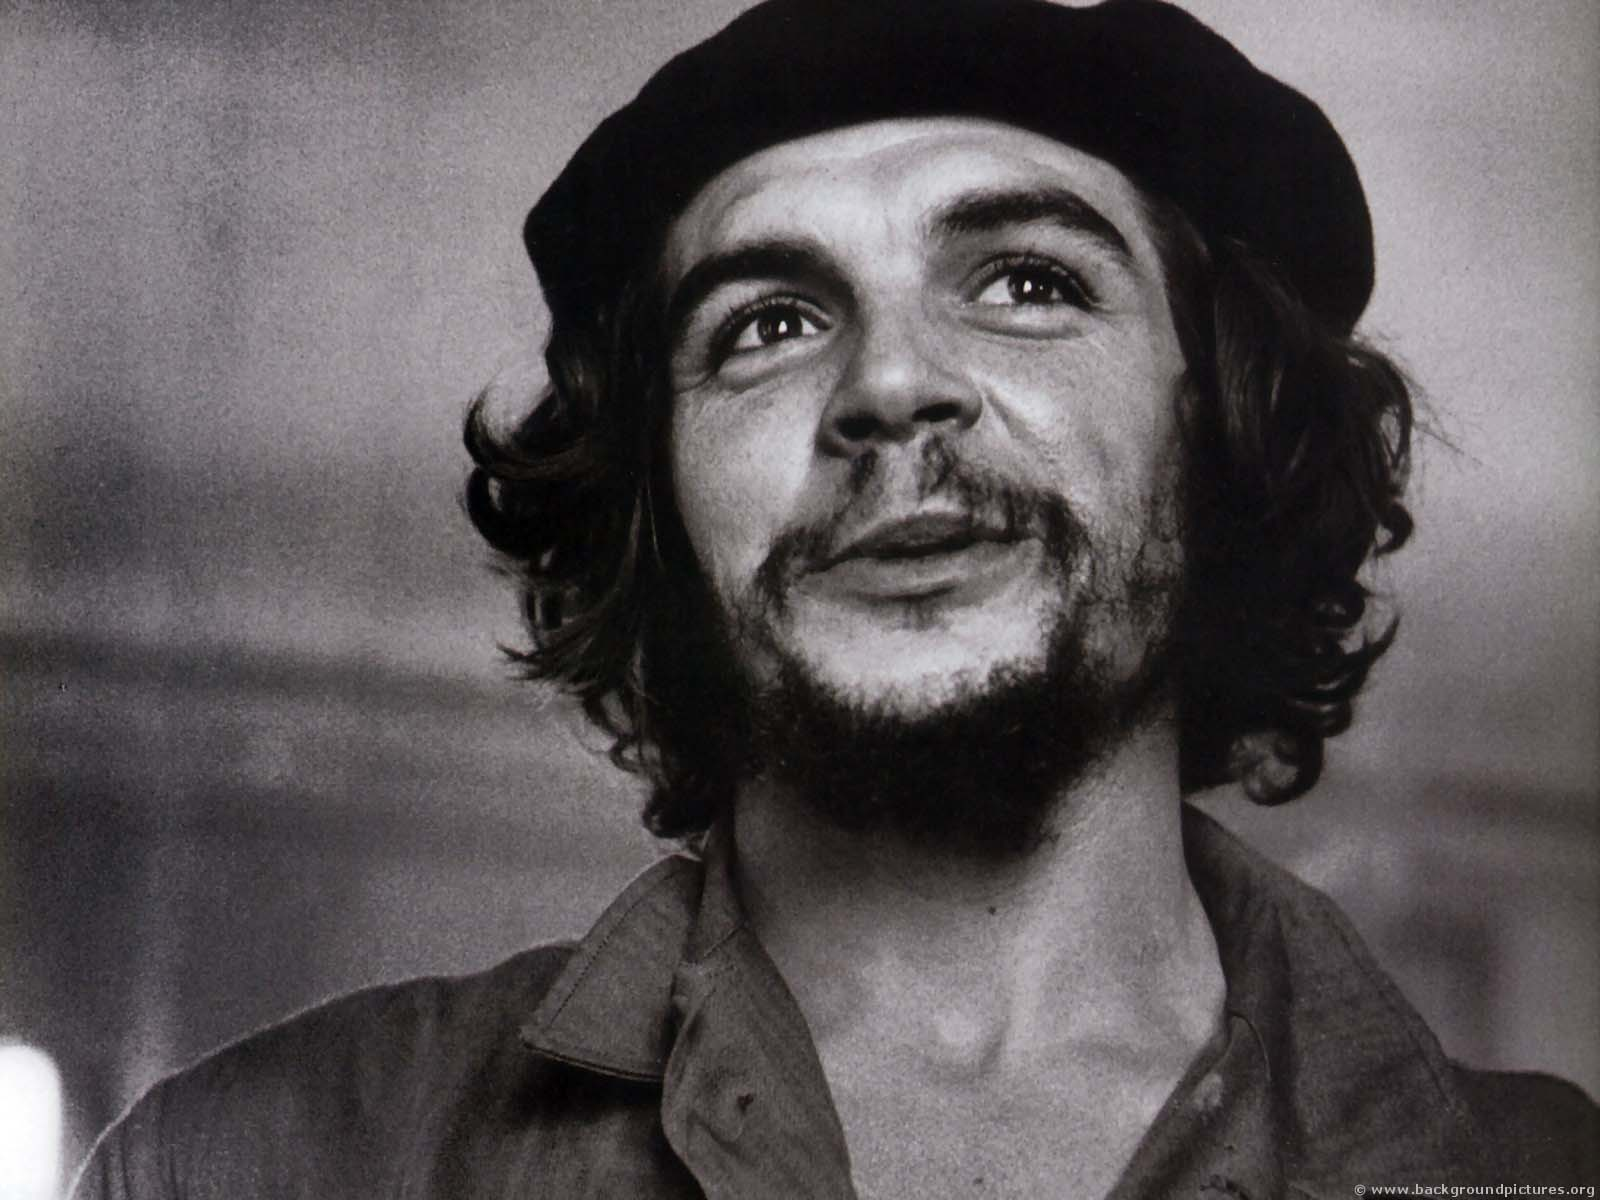 Ernesto ¨Che¨ Guevara: assassinated on October 9, 1967